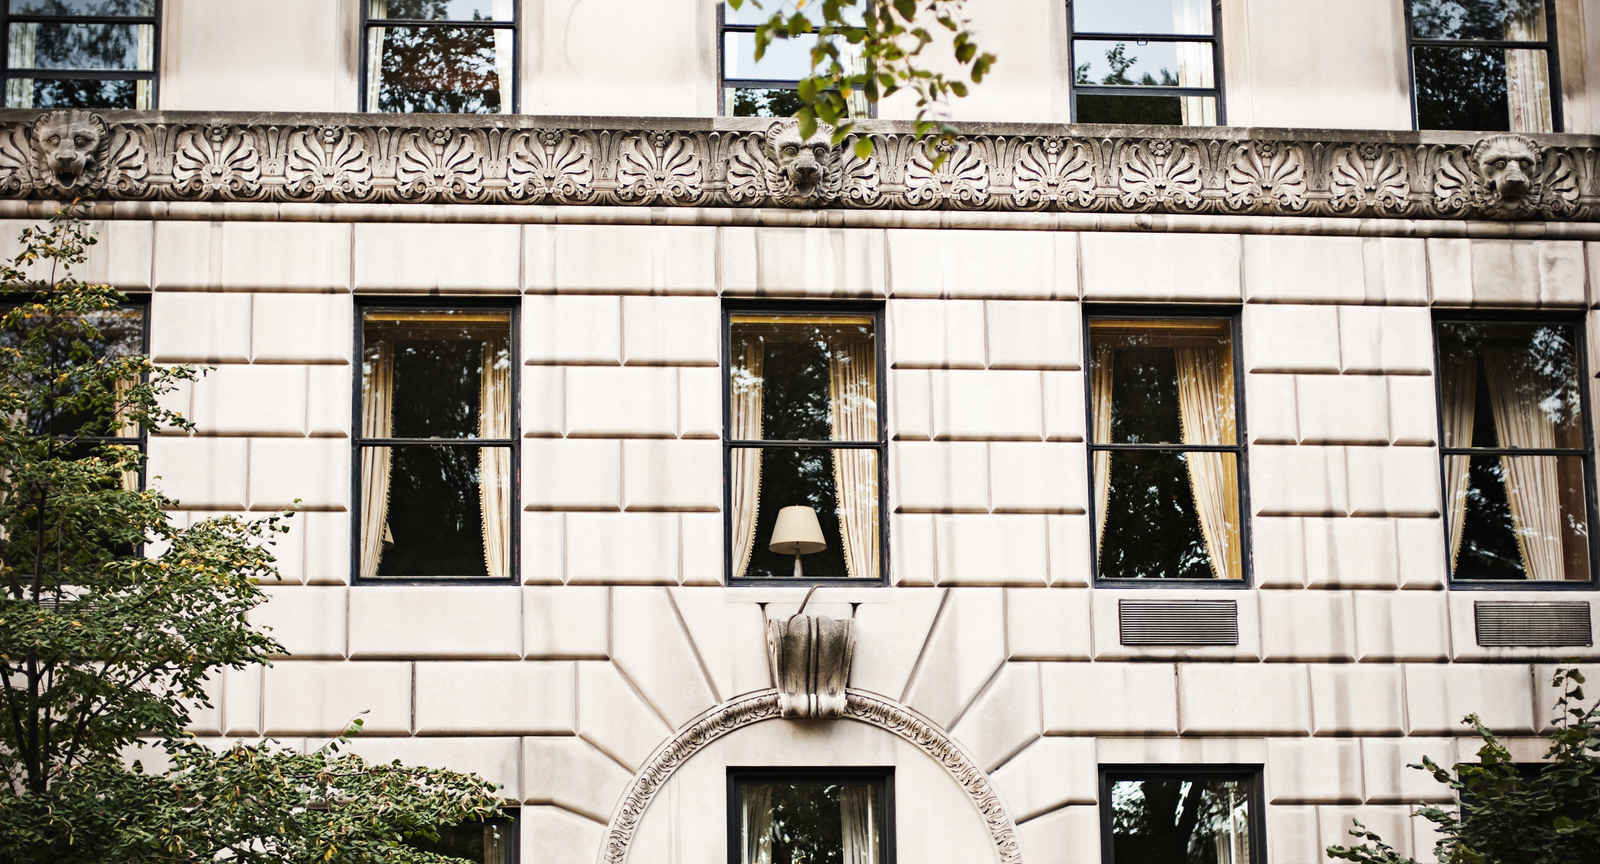 Architecture on the Upper East Side of Manhattan, New York